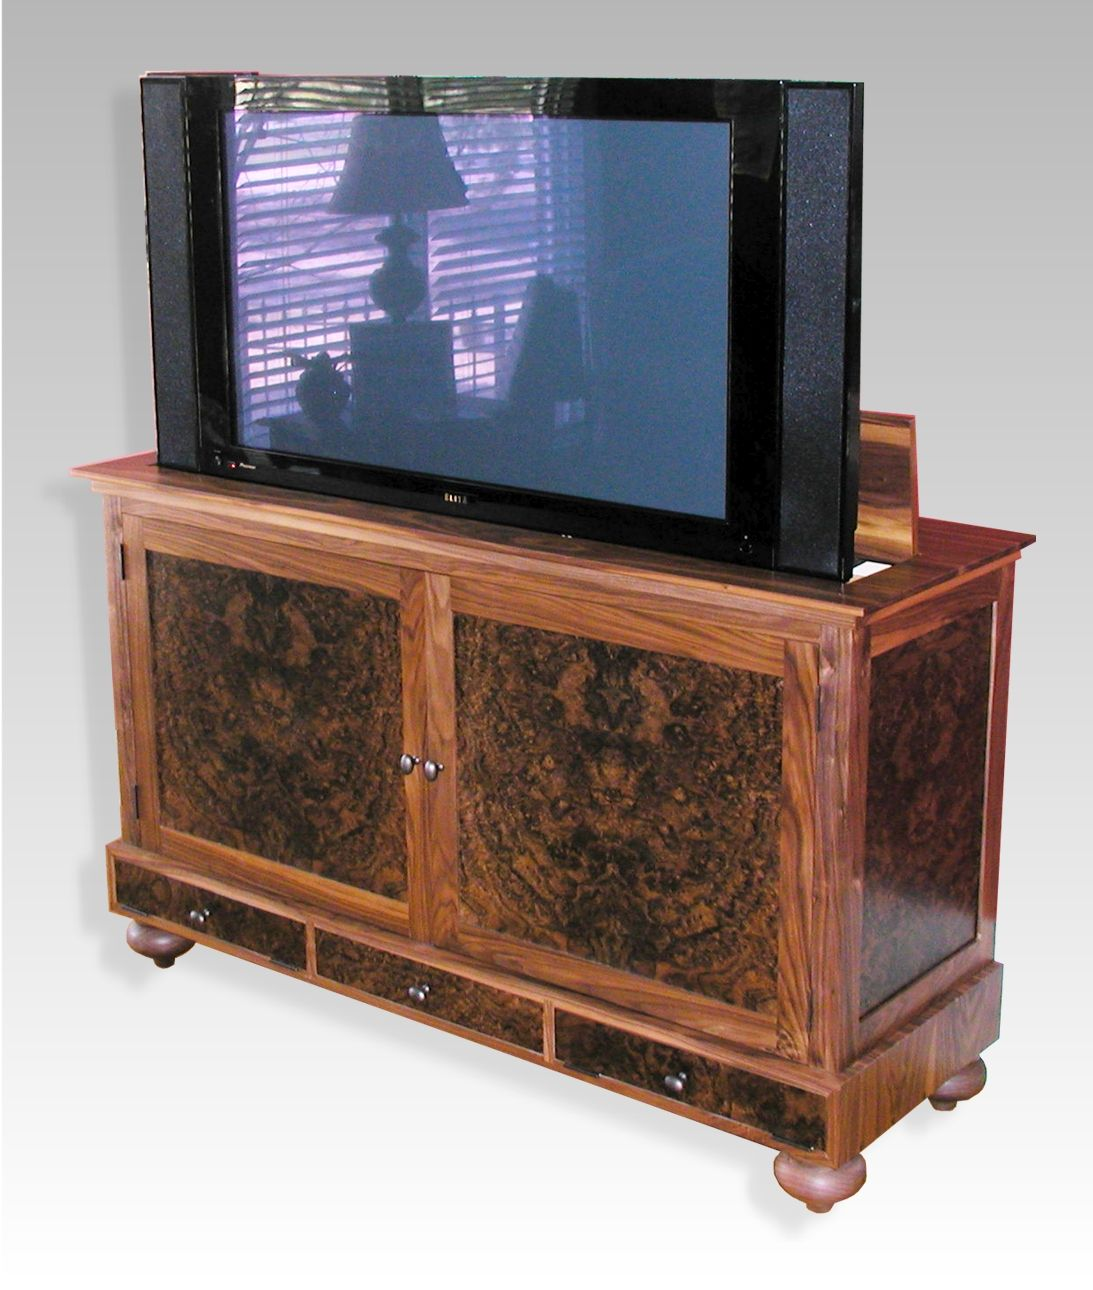 Tv Lift Meubel Ikea.Cabinet For Tv Lifts Google Search Rustic Tv Console Hidden